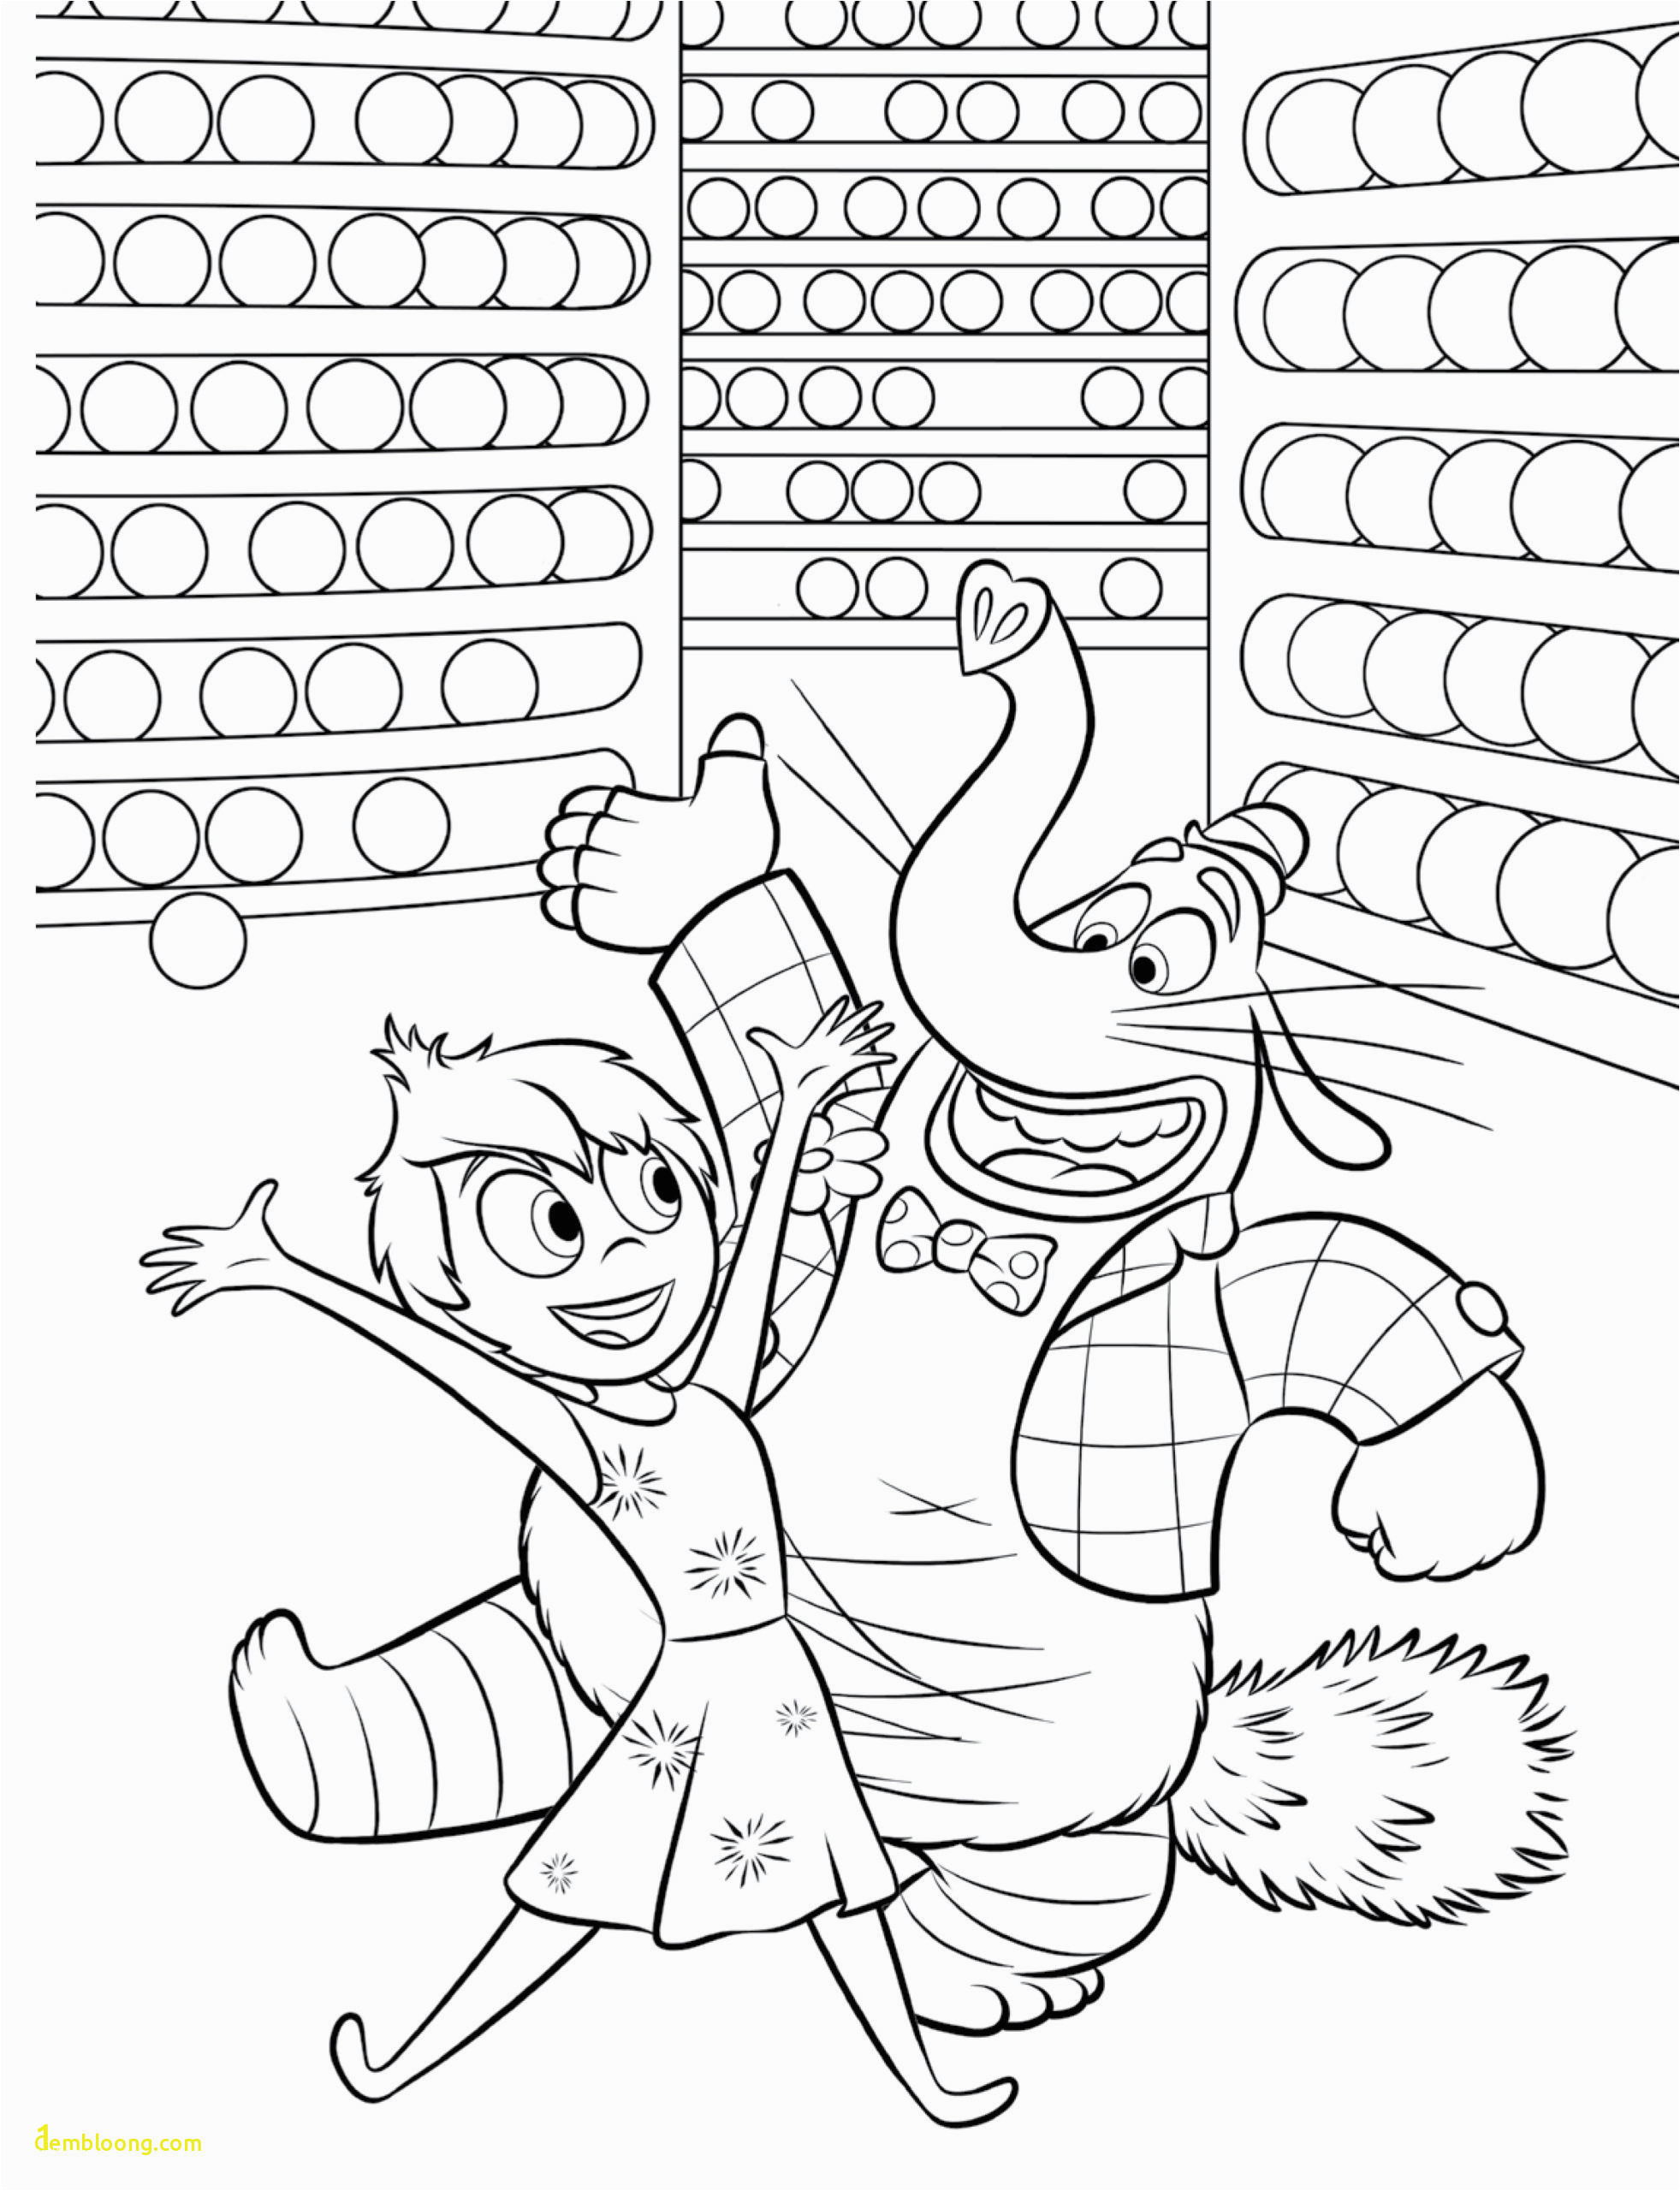 coloring pages you can color on the puter for adults beautiful coloring pages free printable color by number for adults of coloring pages you can color on the puter for adults